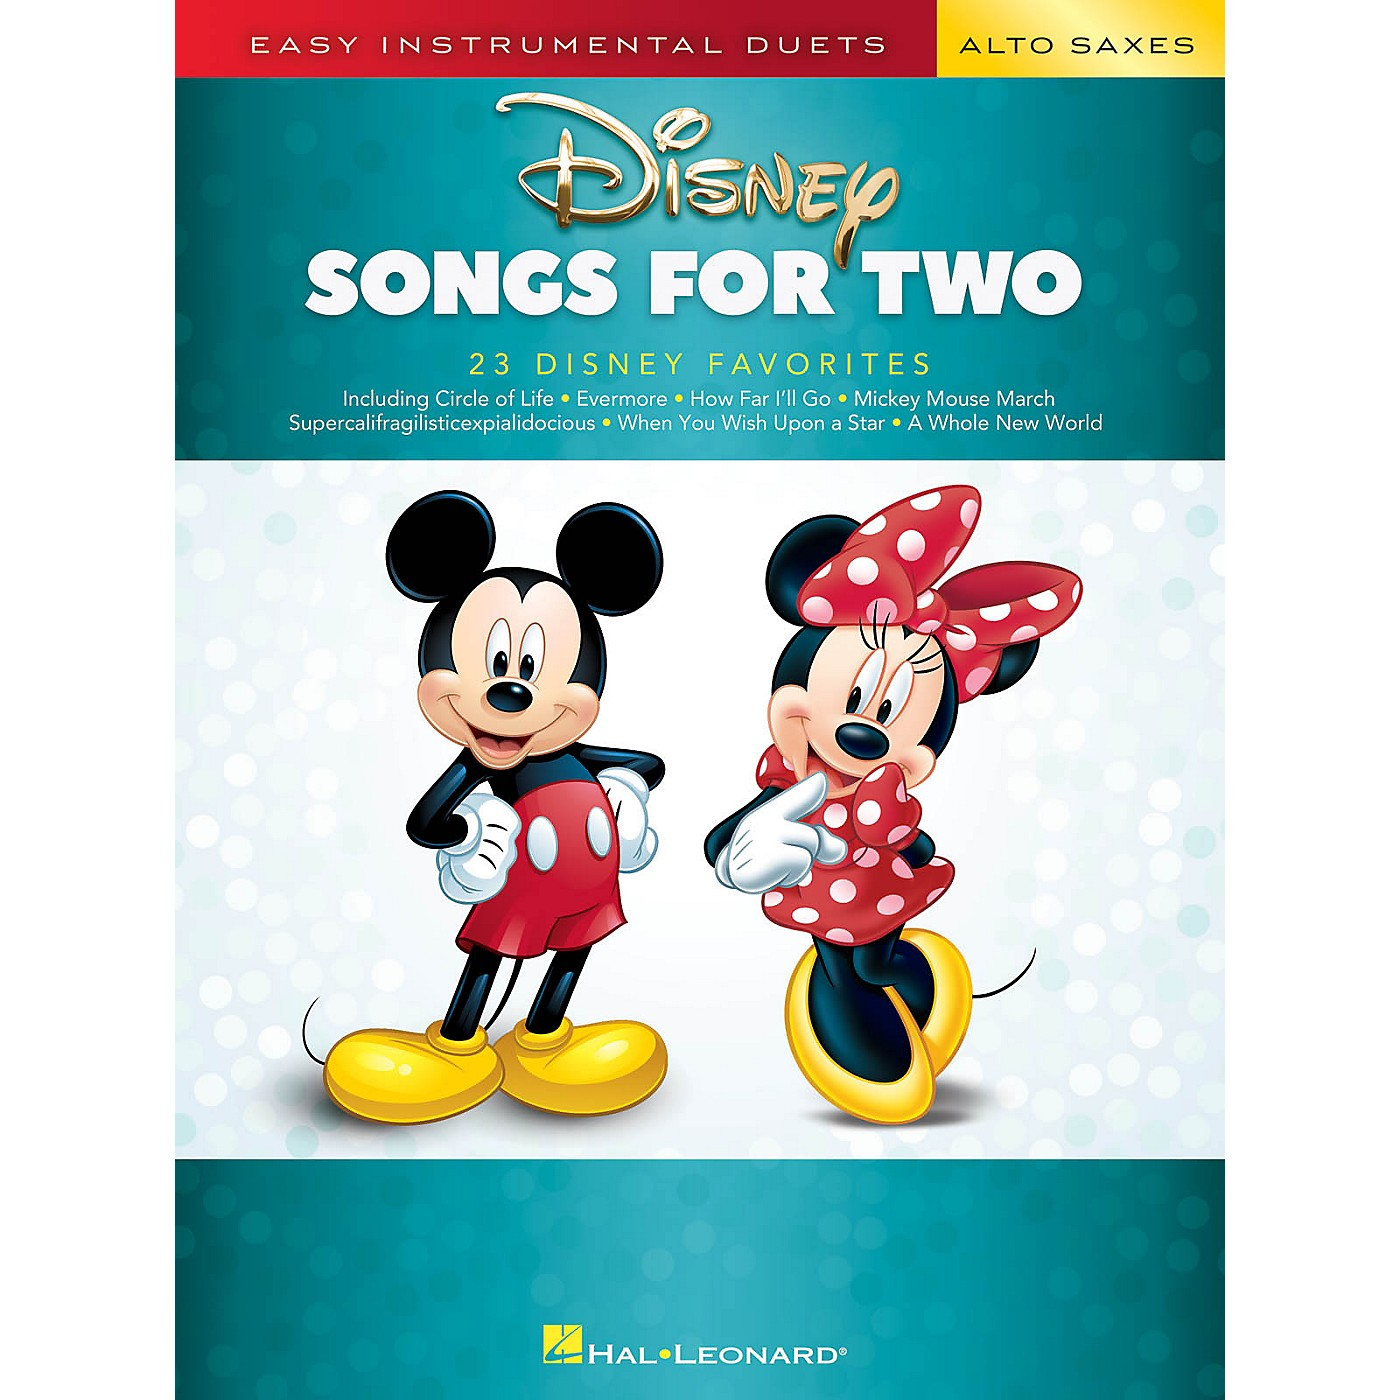 Hal Leonard Disney Songs for Two Alto Saxes - Easy Instrumental Duets Series Songbook thumbnail